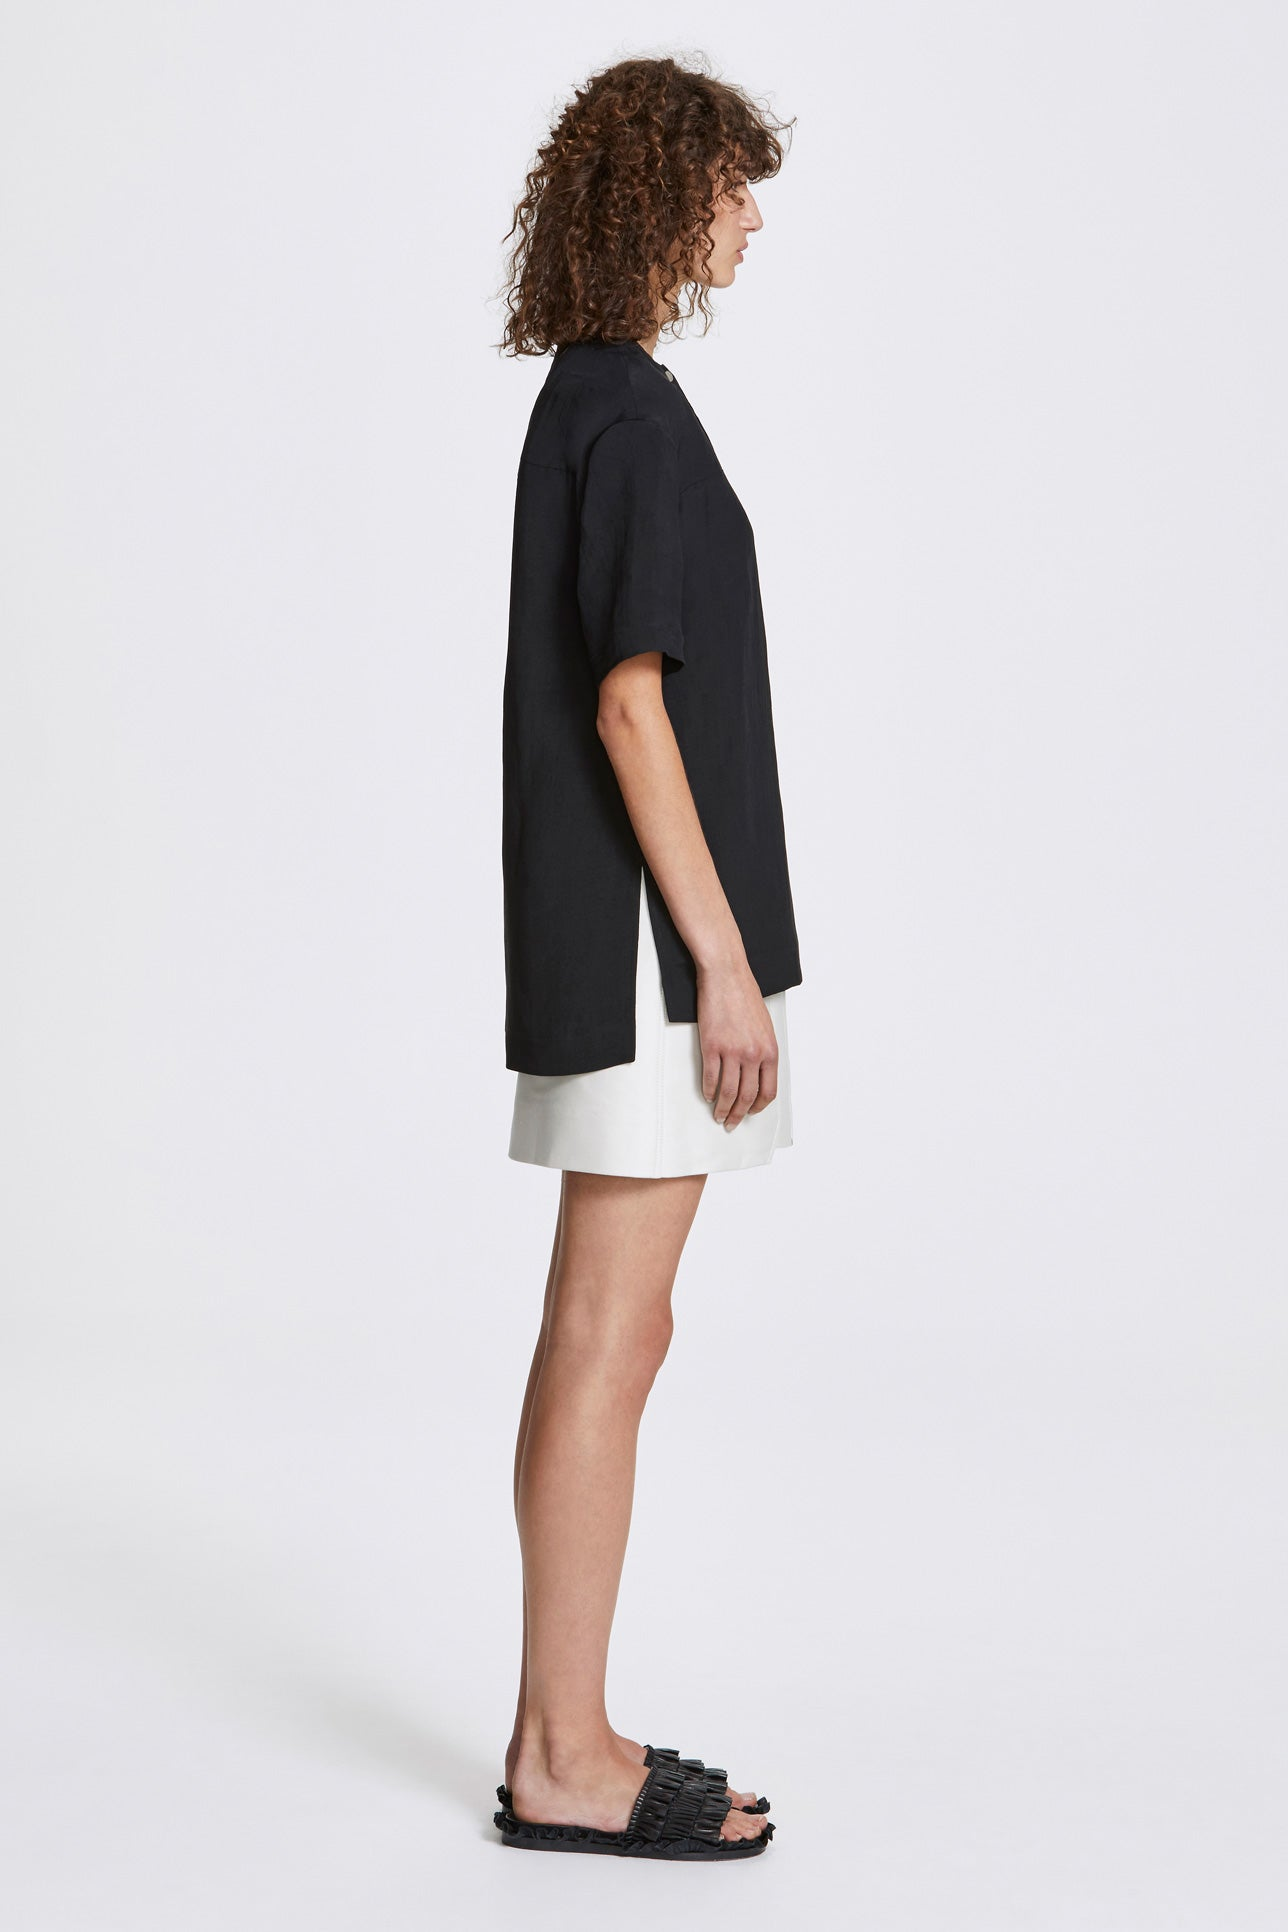 Bi-stud dropped top - Linen blend - Black